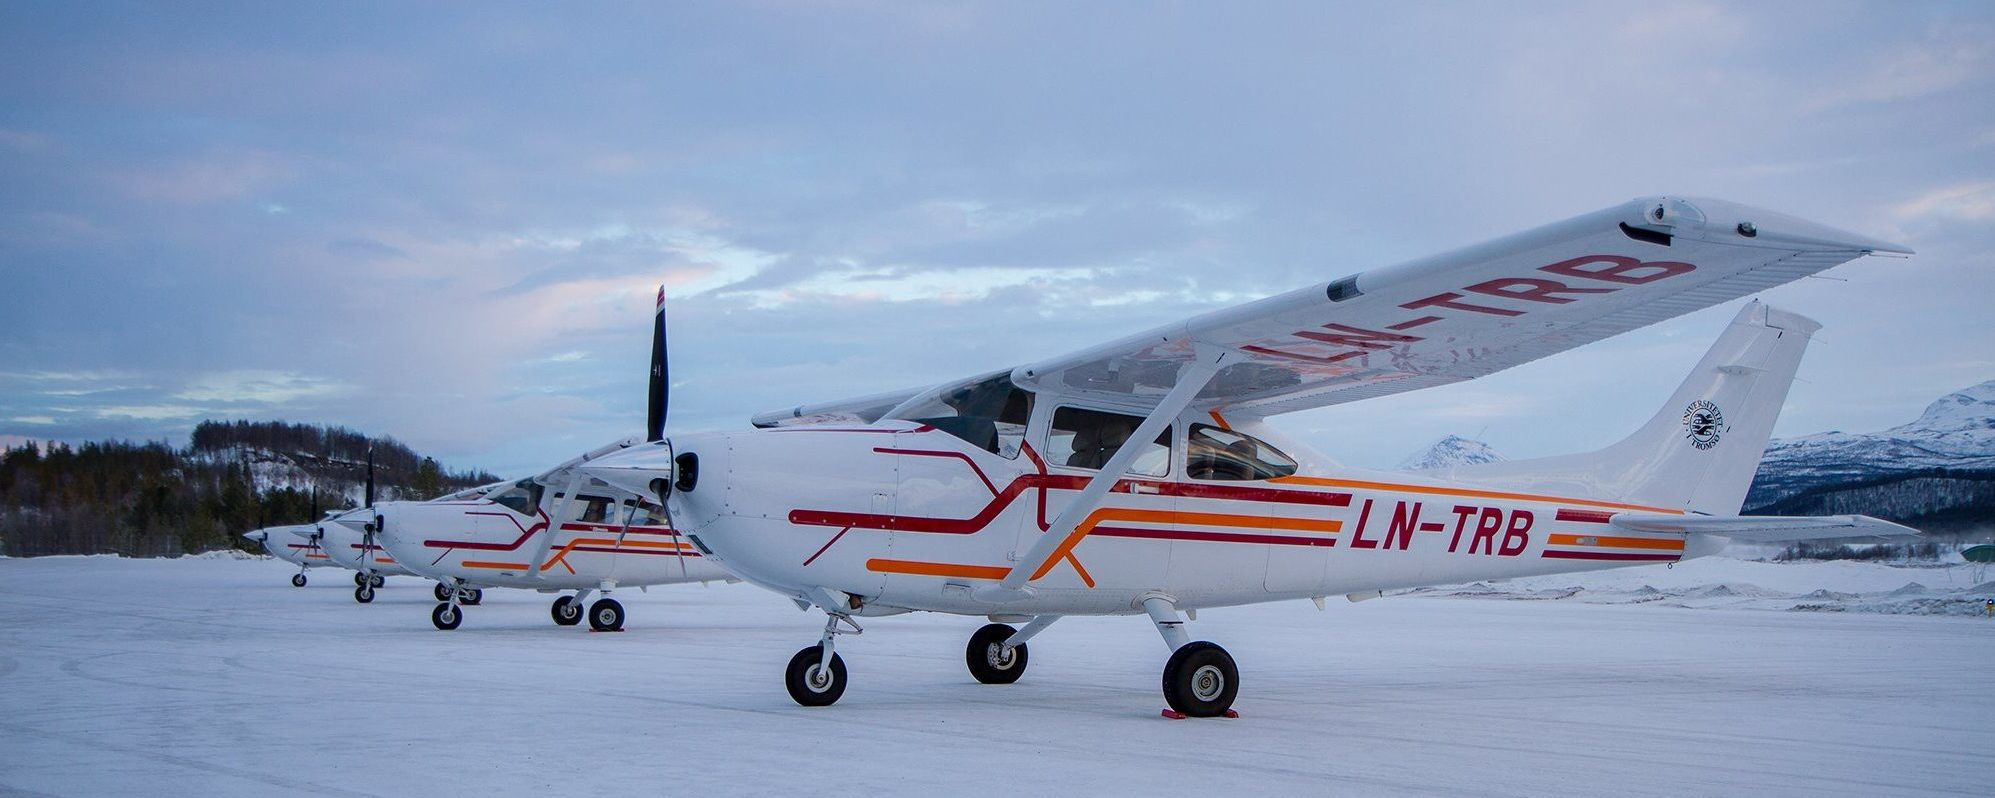 University of Tromsø School of Aviation